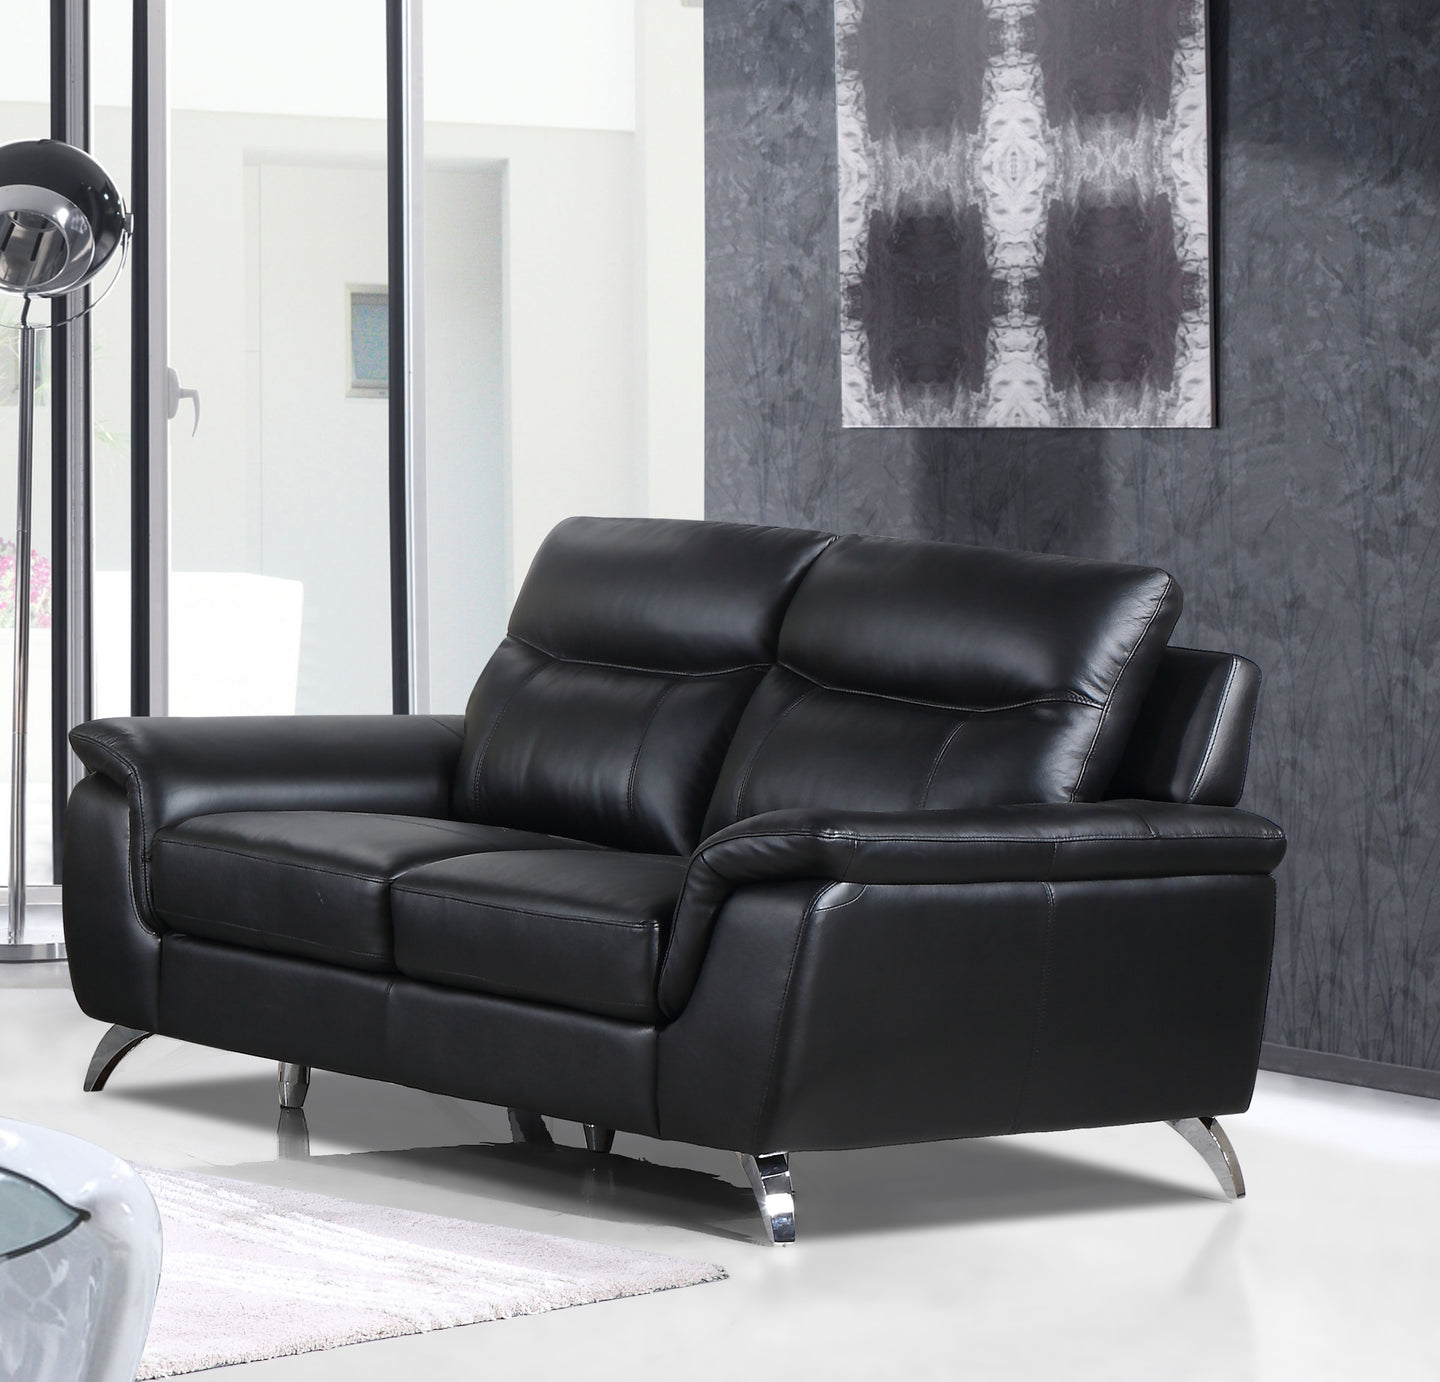 Cortesi Home Chicago Genuine Leather Loveseat, Black 66